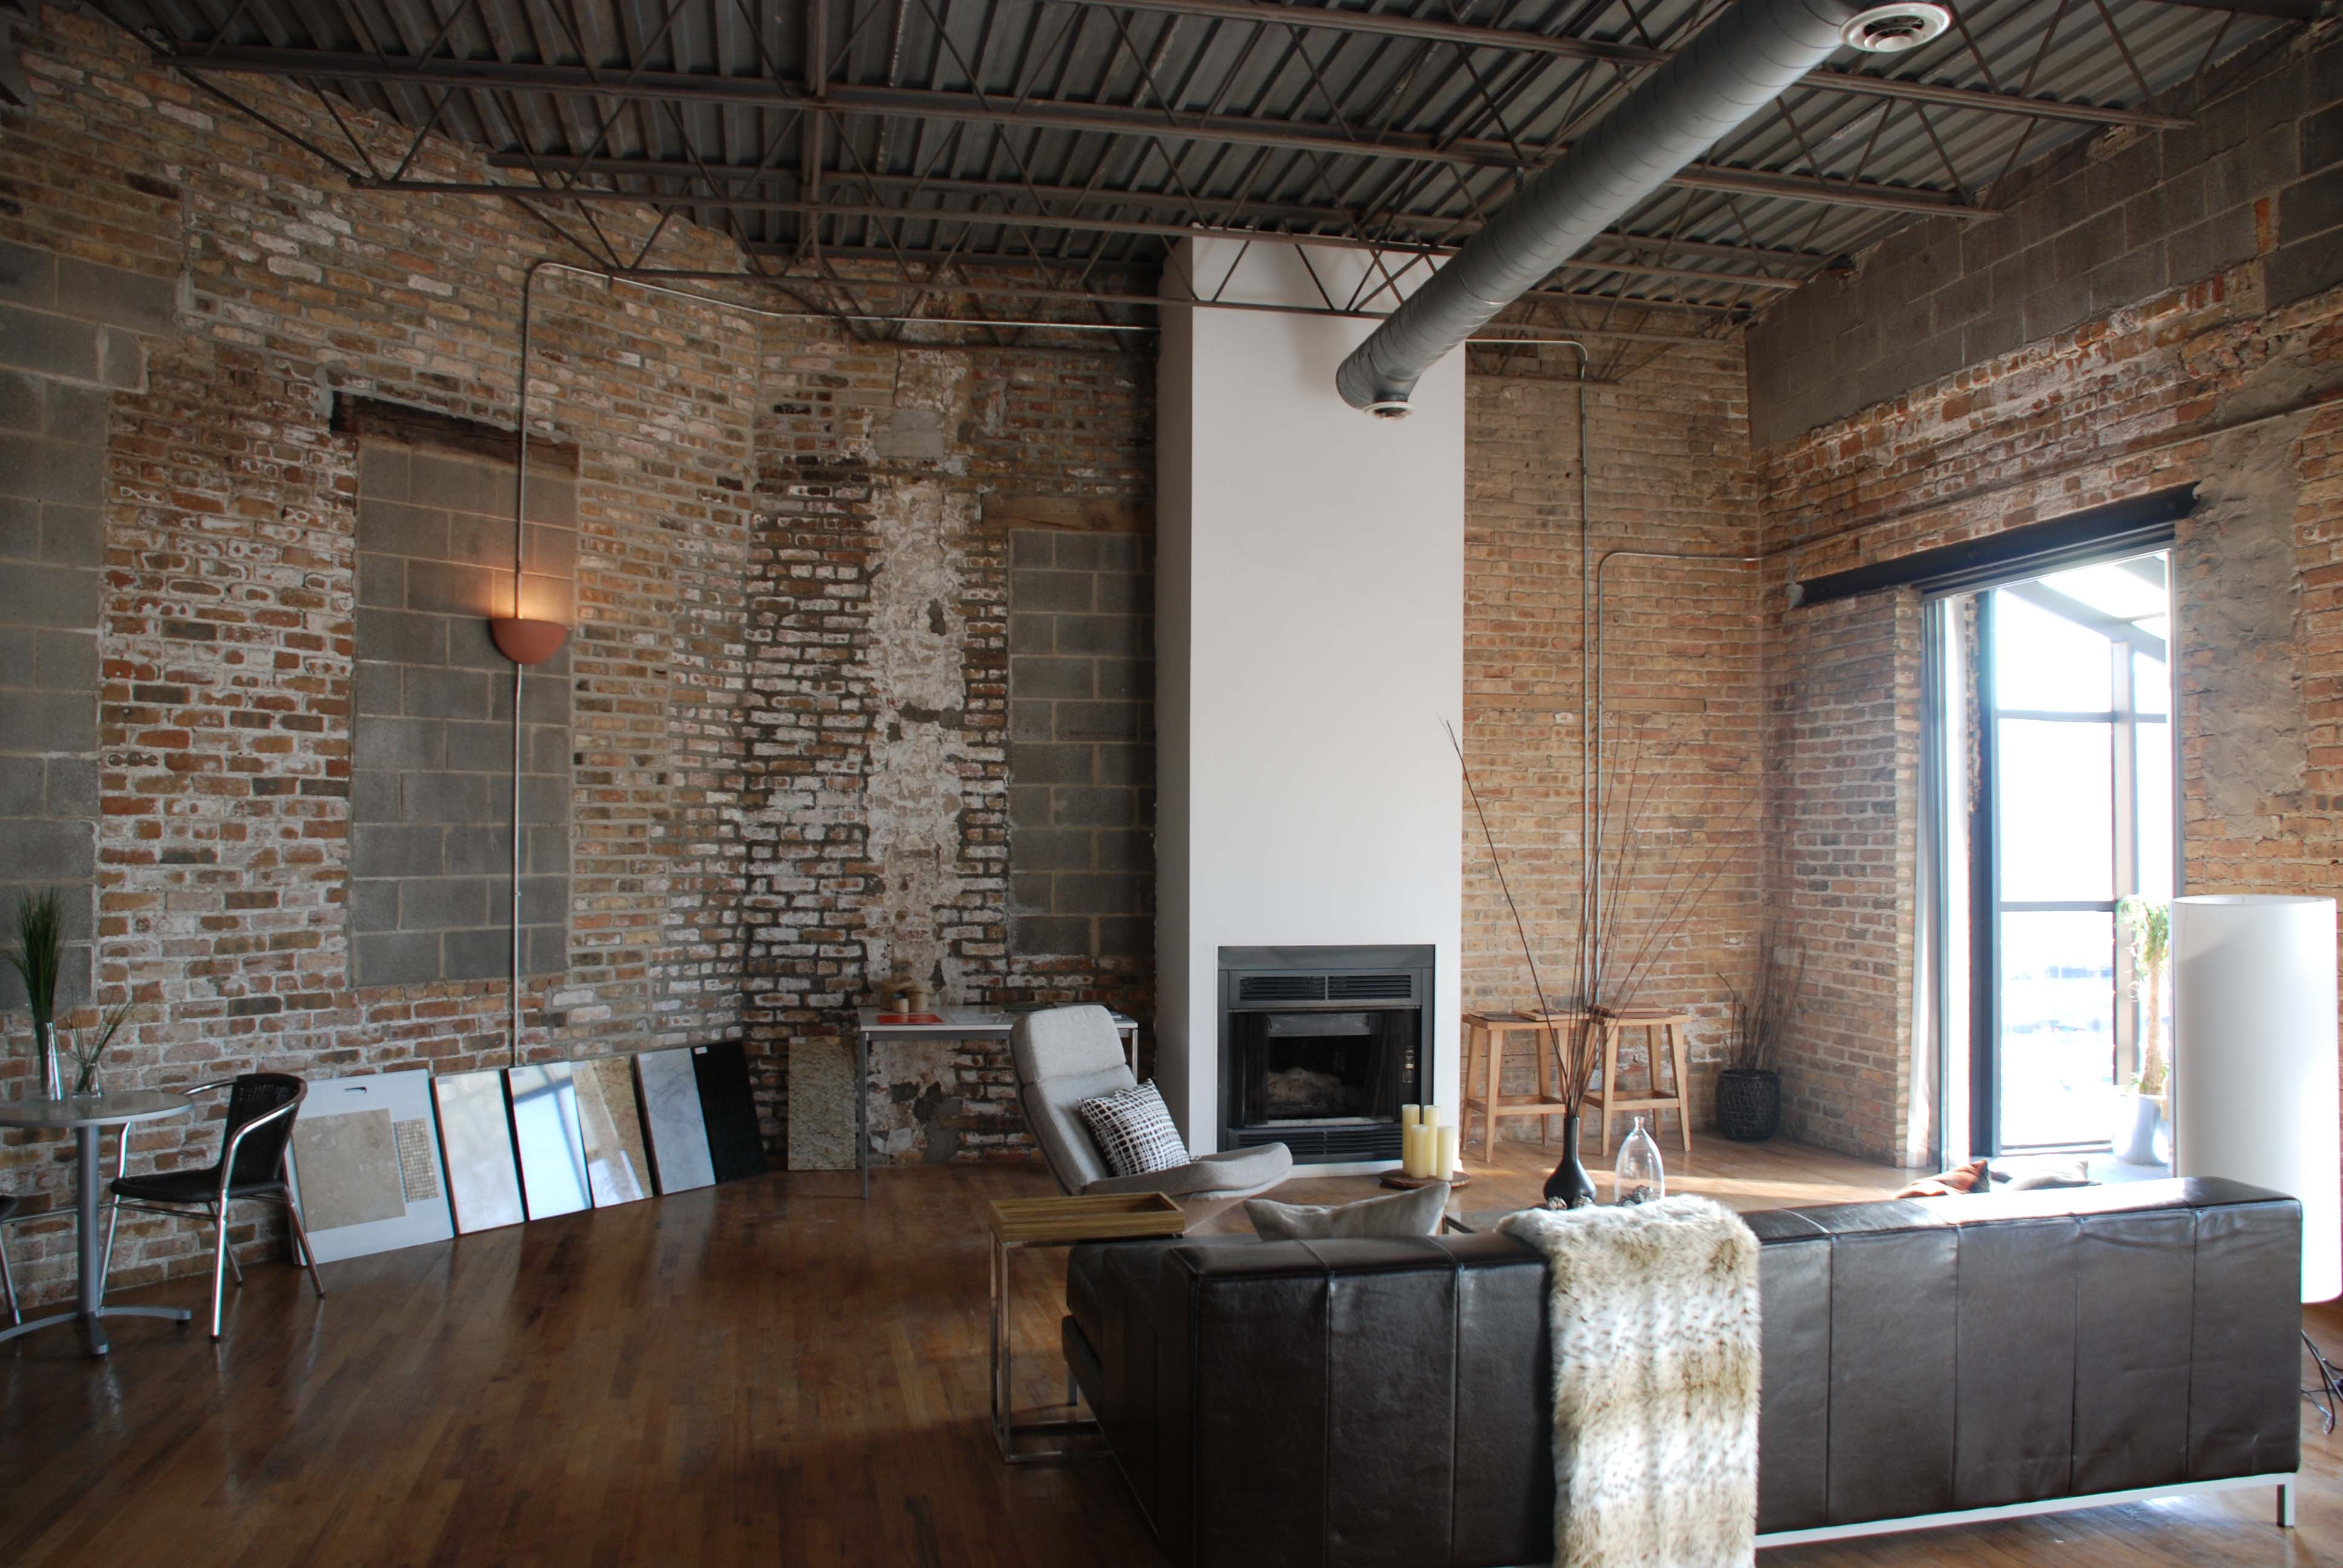 The Pros And Cons Of Living In A Loft 3872x2592